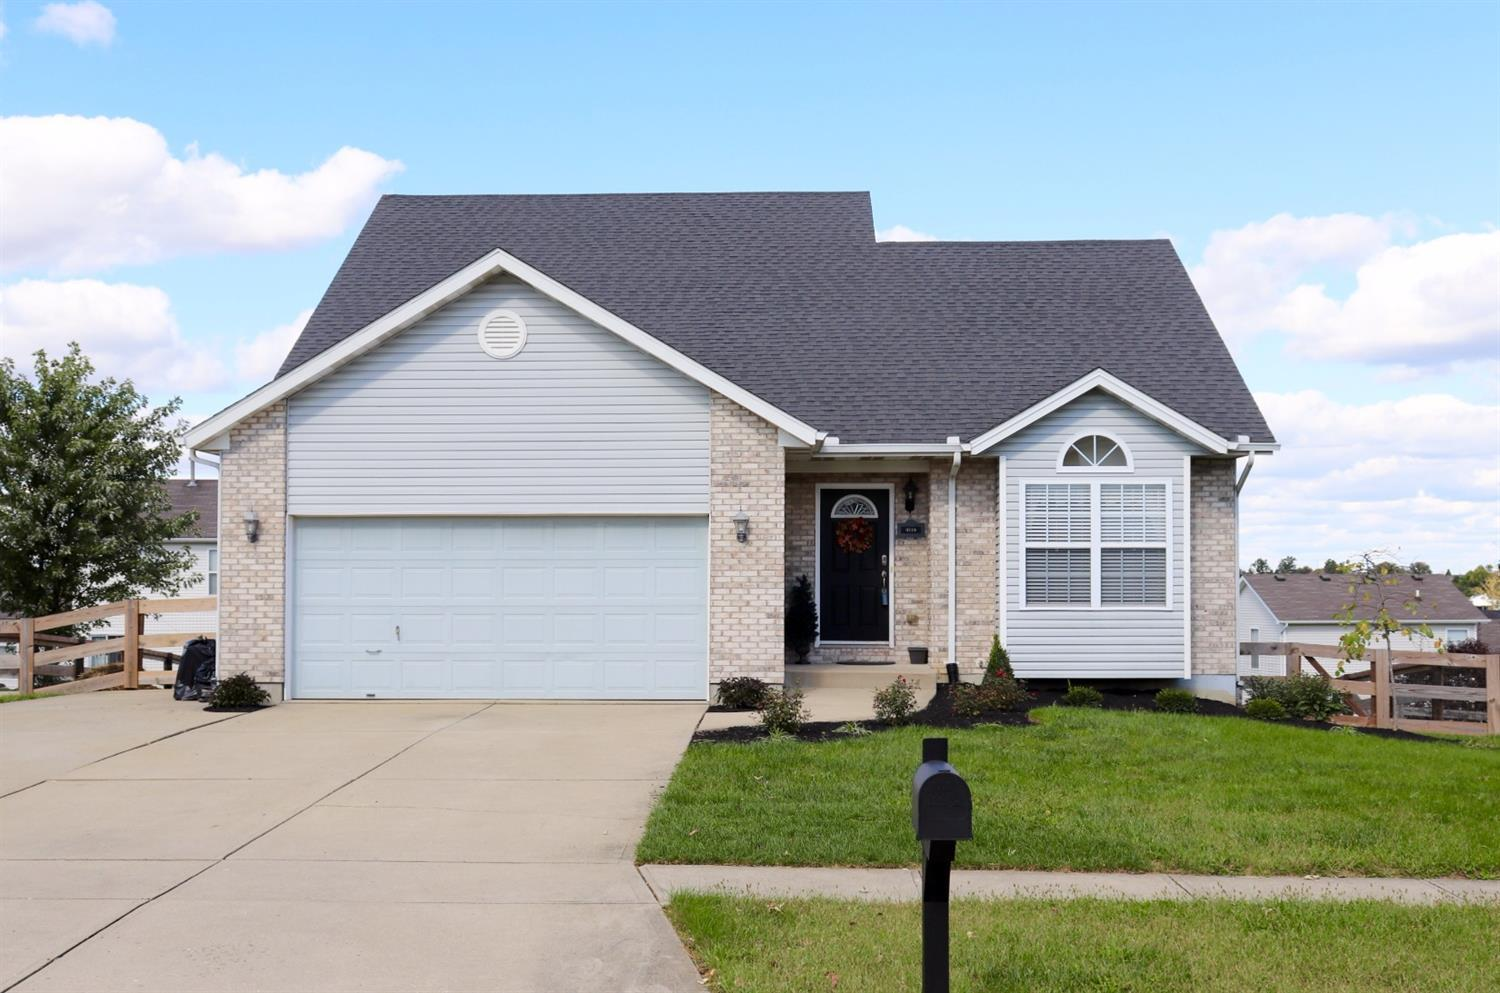 Property Sold By City Of Fairfield Oh